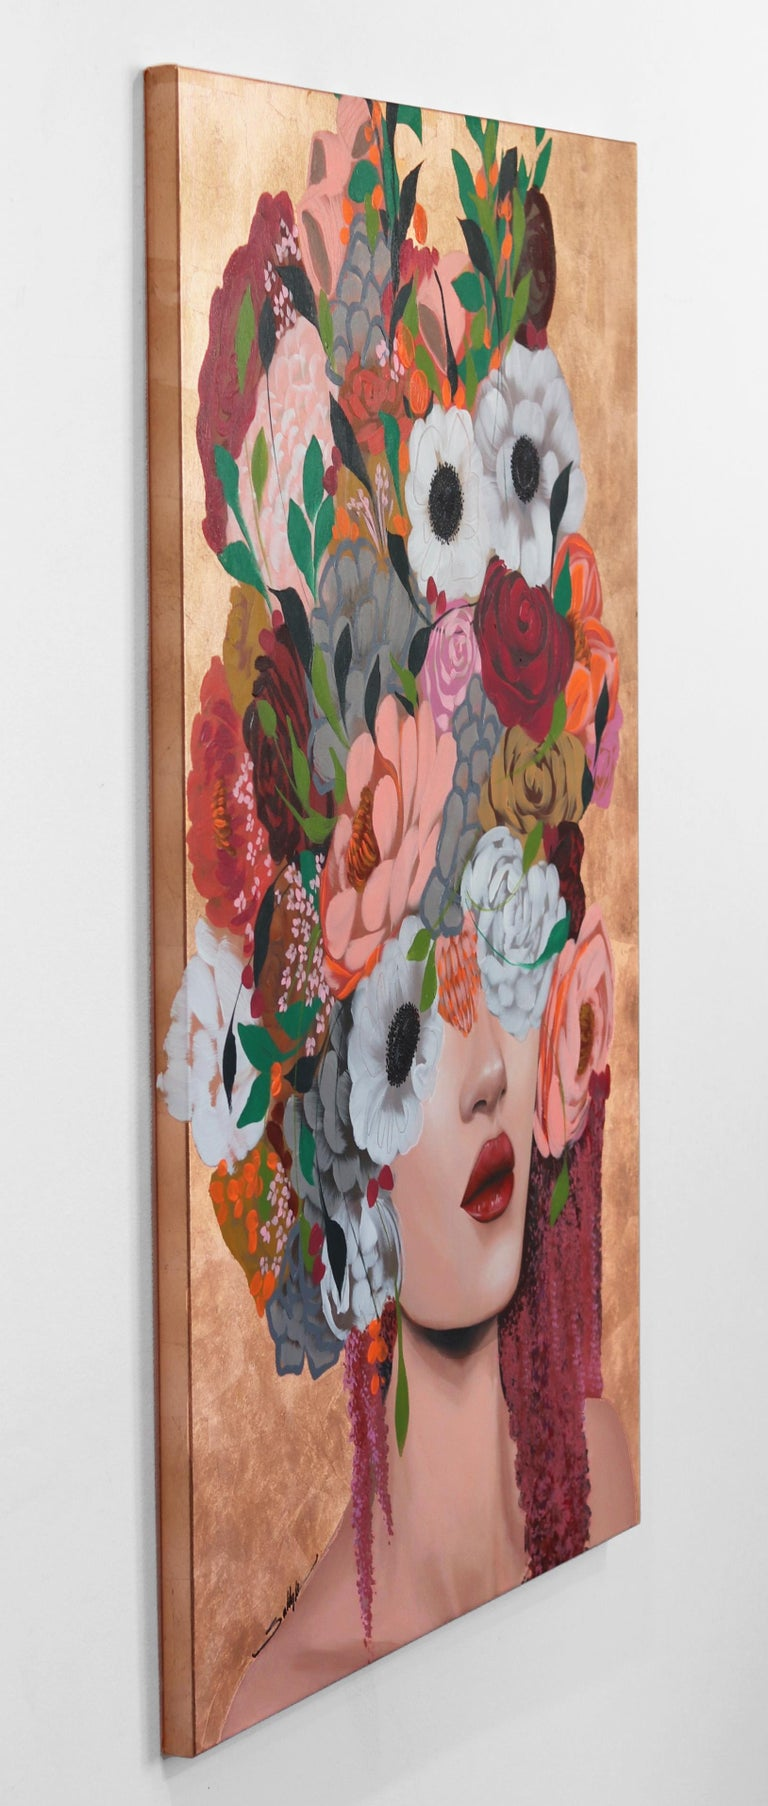 As your gaze lingers on one of Sally K's paintings, you notice how Sally's brush strokes add playfulness and life to the canvas, incorporating unexpected images and shapes of flowers, or abstract color combinations to convey the vibrant beauty of a